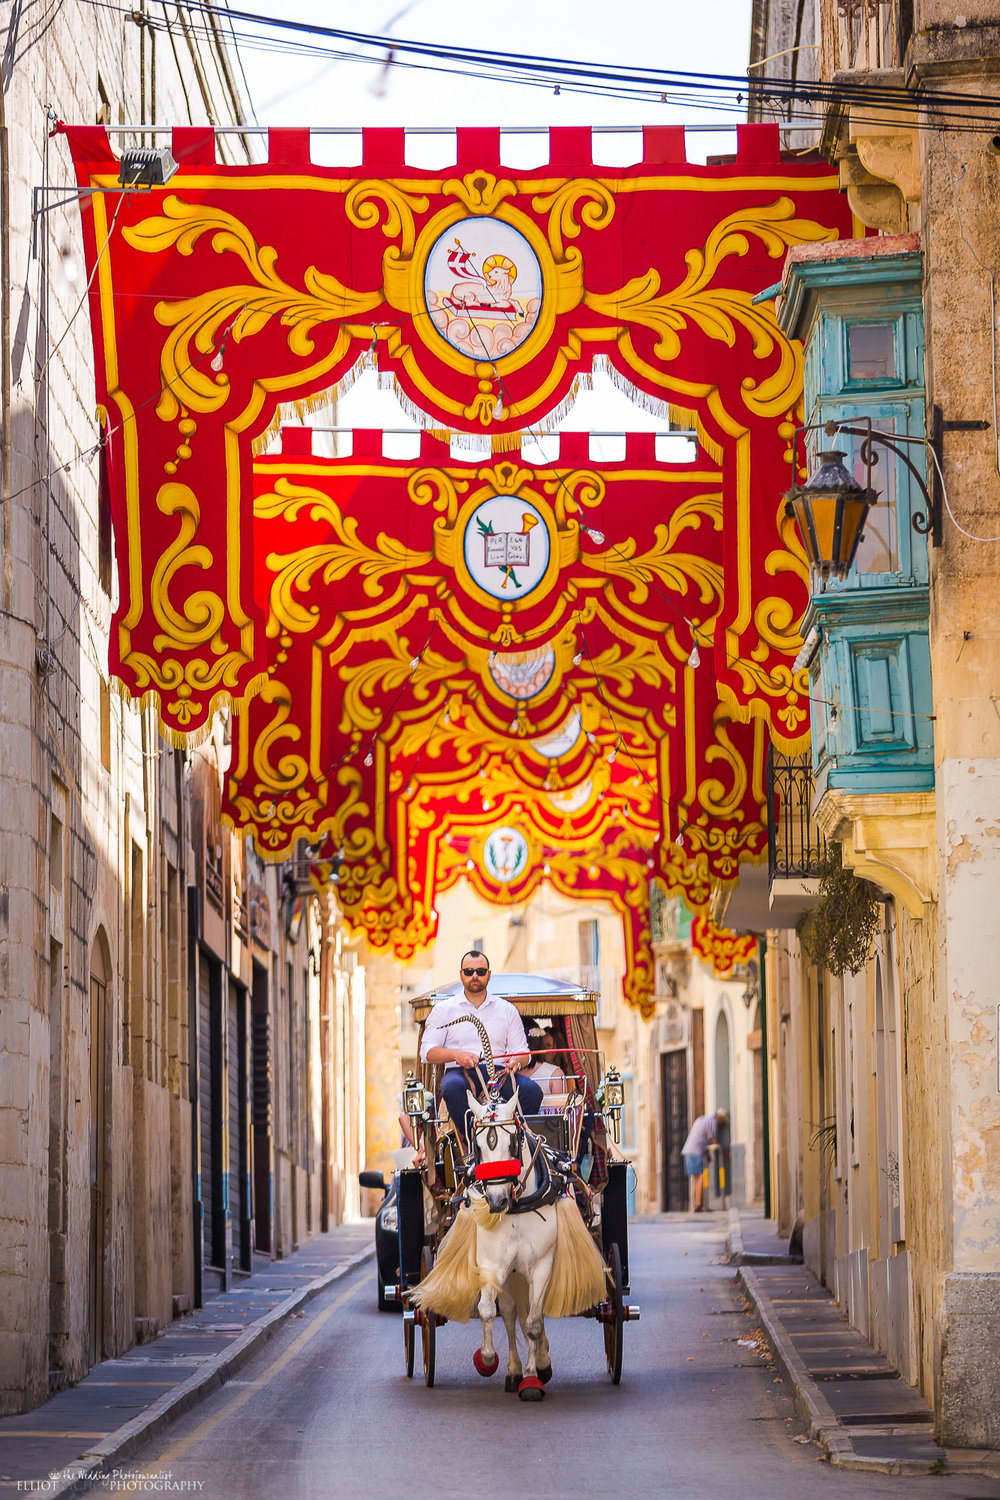 wedding-horse-carriage-wedding-photography-destination-Malta